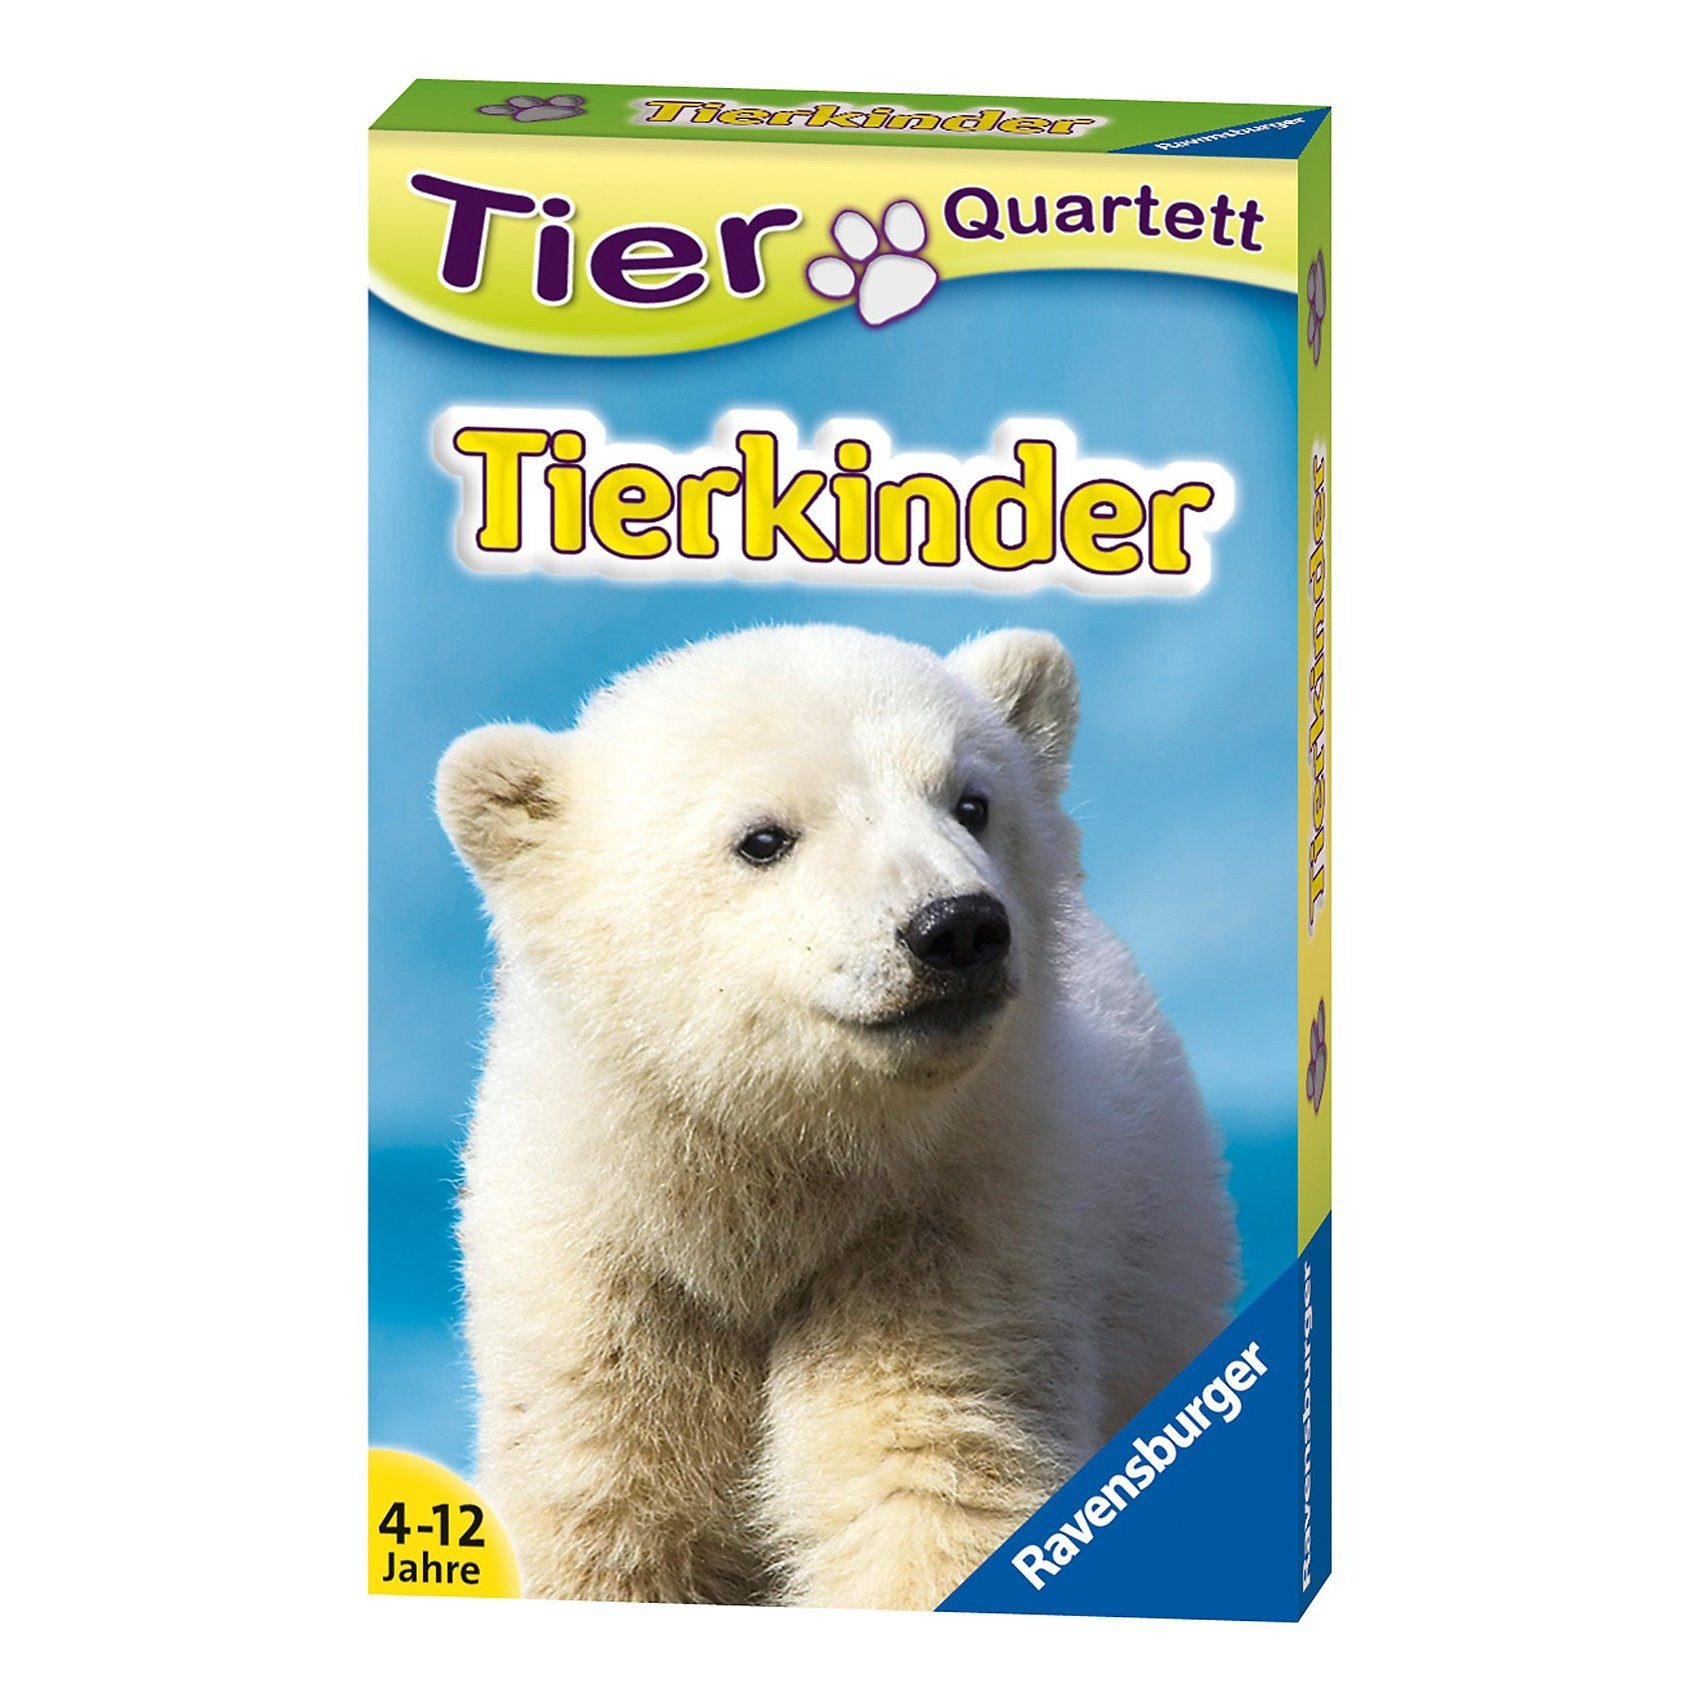 Ravensburger Tier-Quartette: Tierkinder